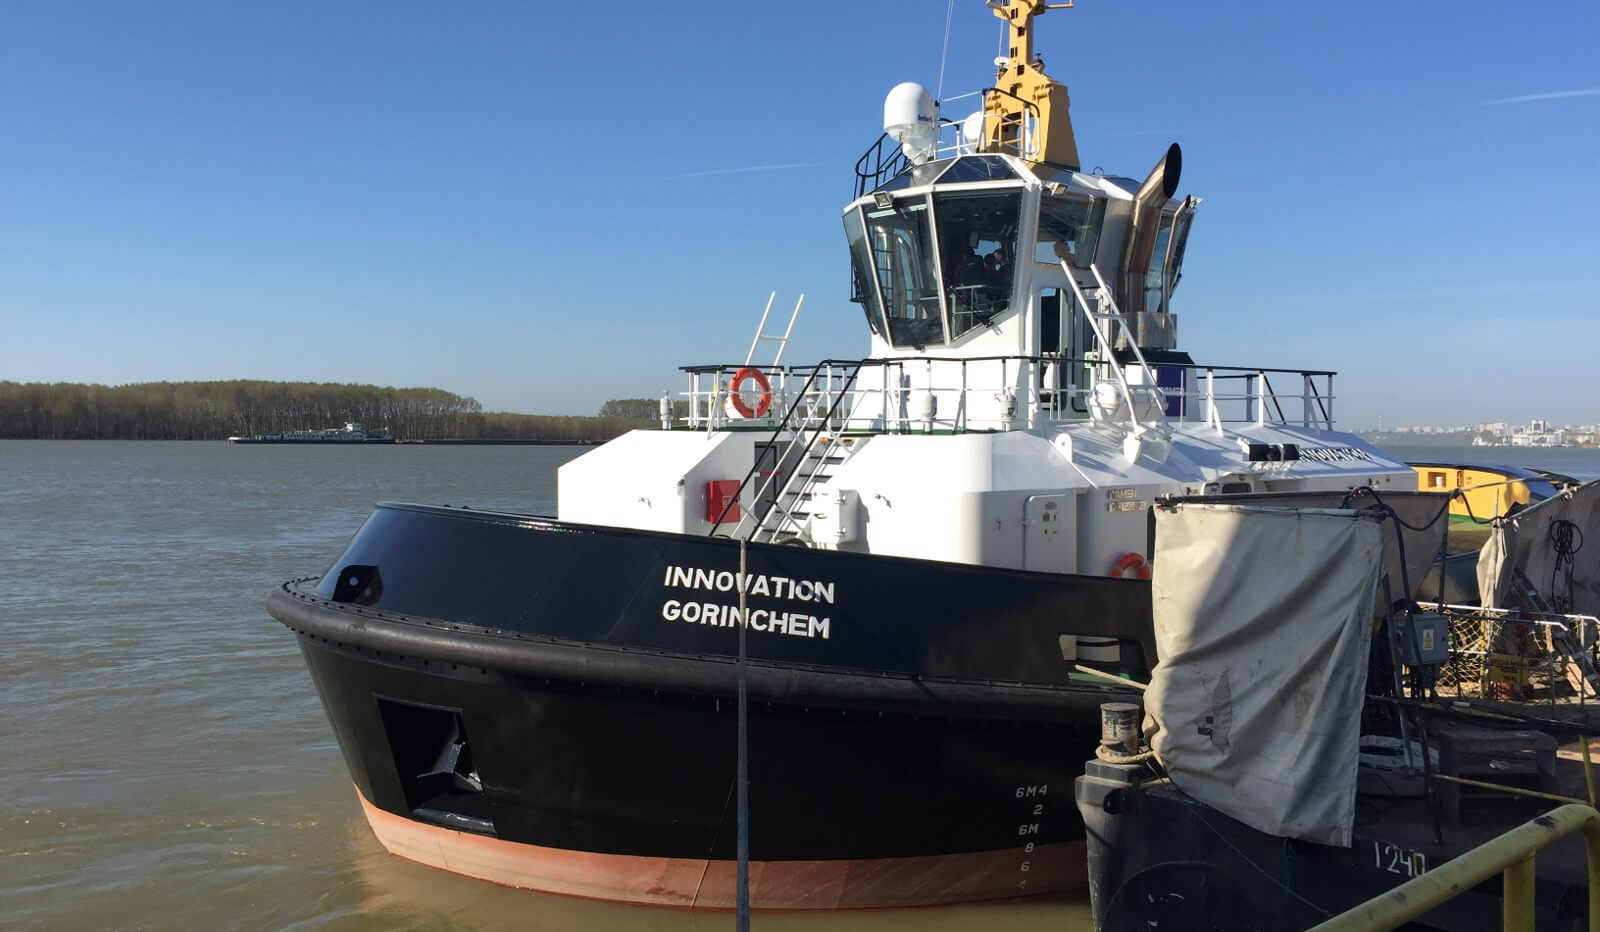 damen rsd tugboat 2513 (02) - wheelhouse fitted with damen safety glass